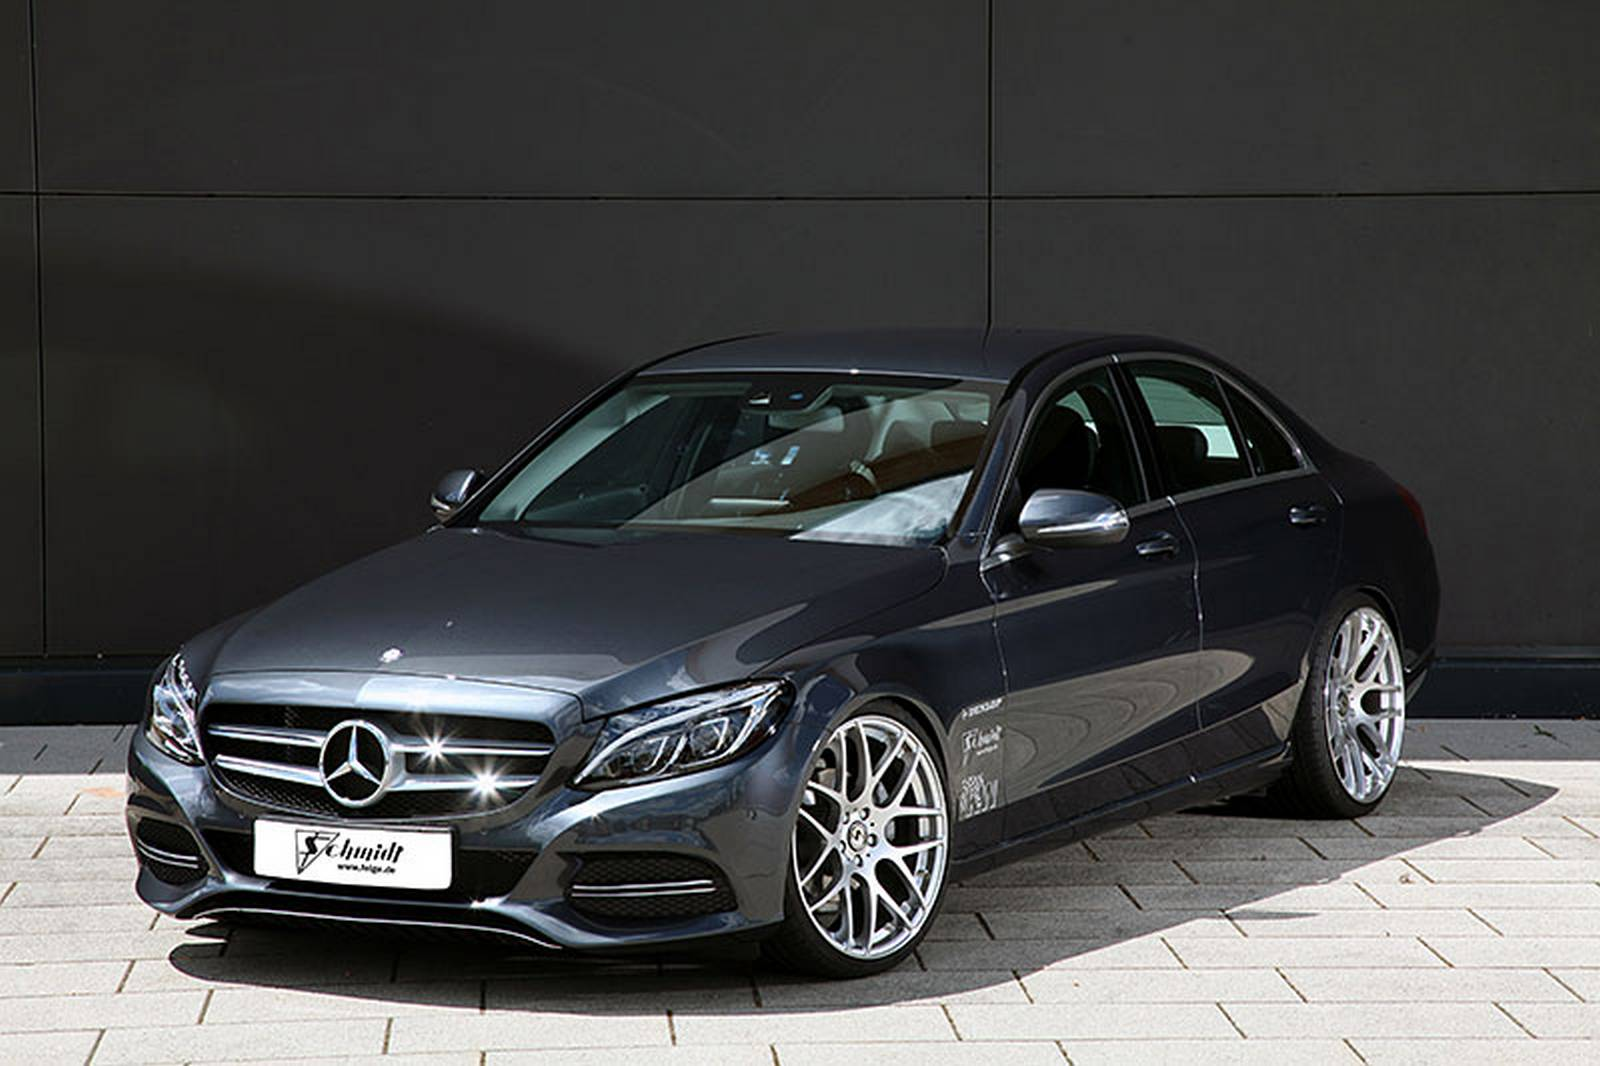 Official 2015 mercedes benz c class by schmidt revolution for Mercedes benz c class pictures